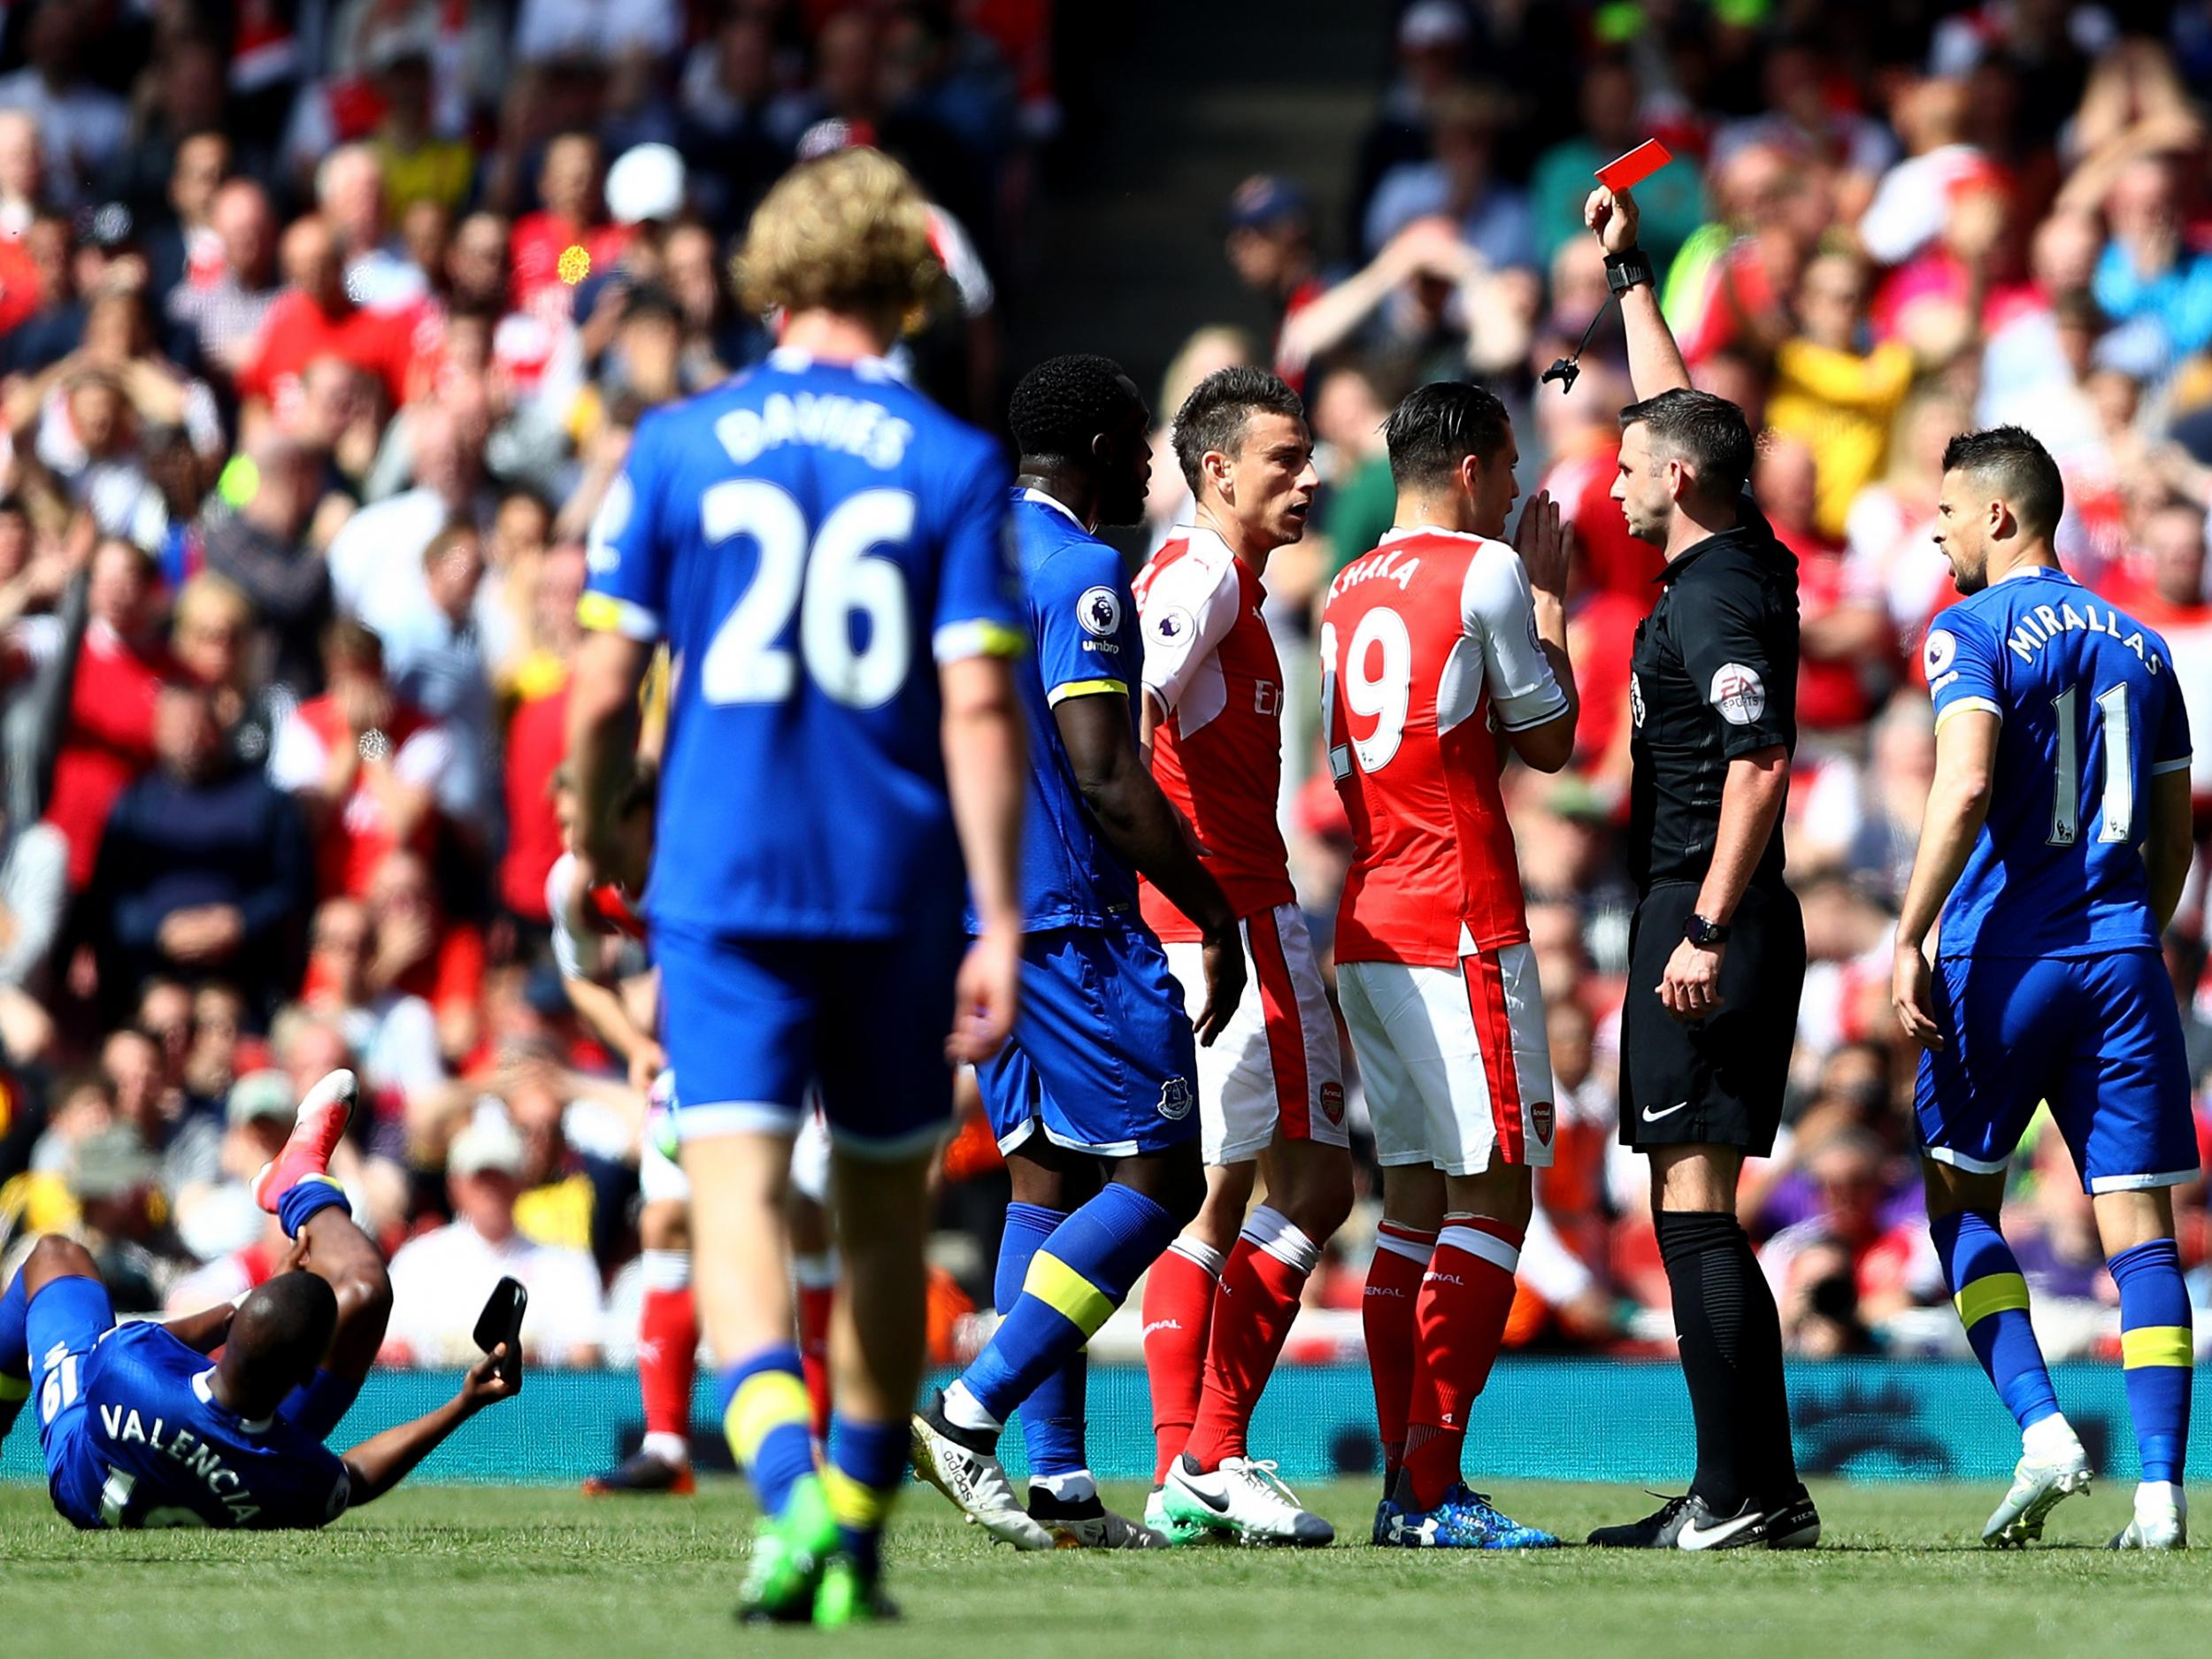 Arsenal facing injury crisis for FA Cup final as Arsene Wenger claims Laurent Koscielny red card was 'harsh'